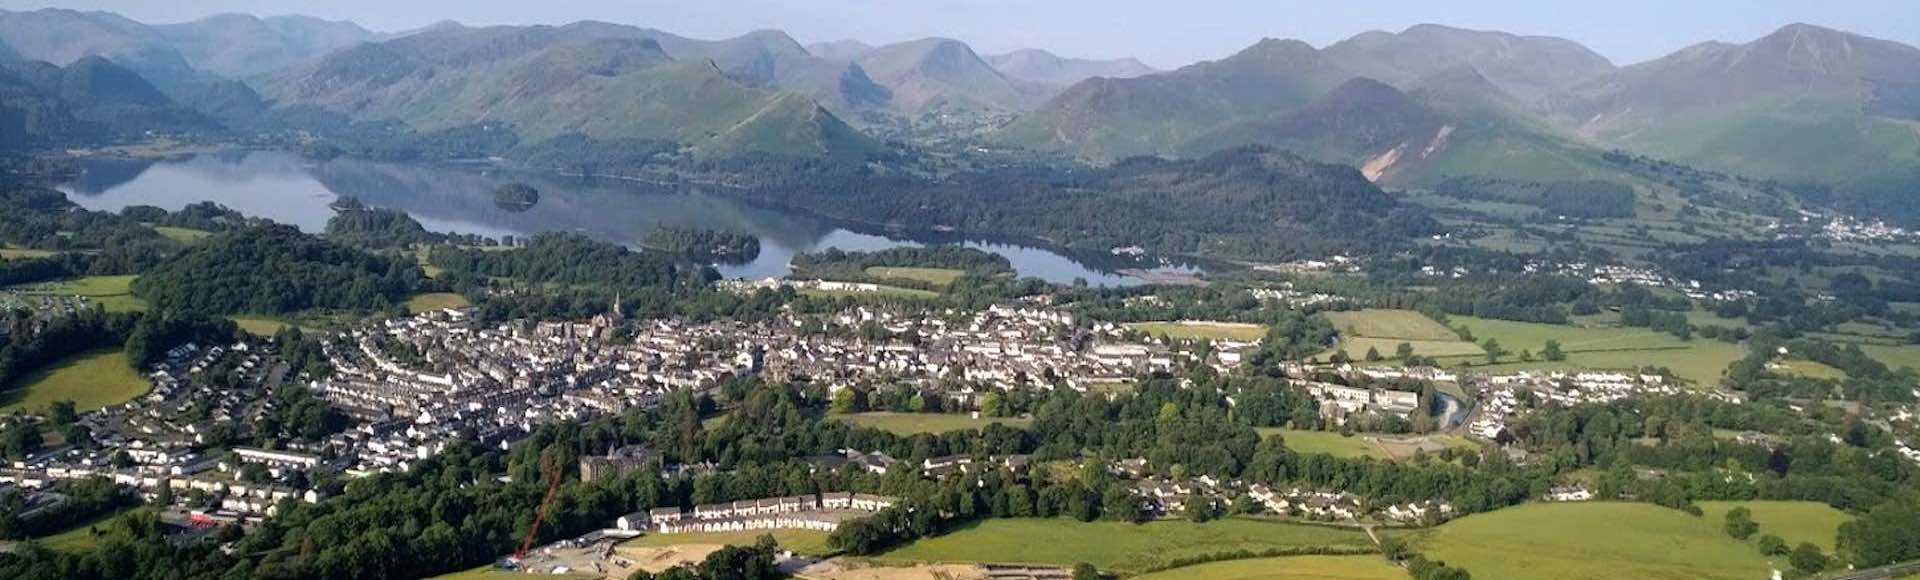 Ariel view of Keswick & Derwentwater in the Lake District